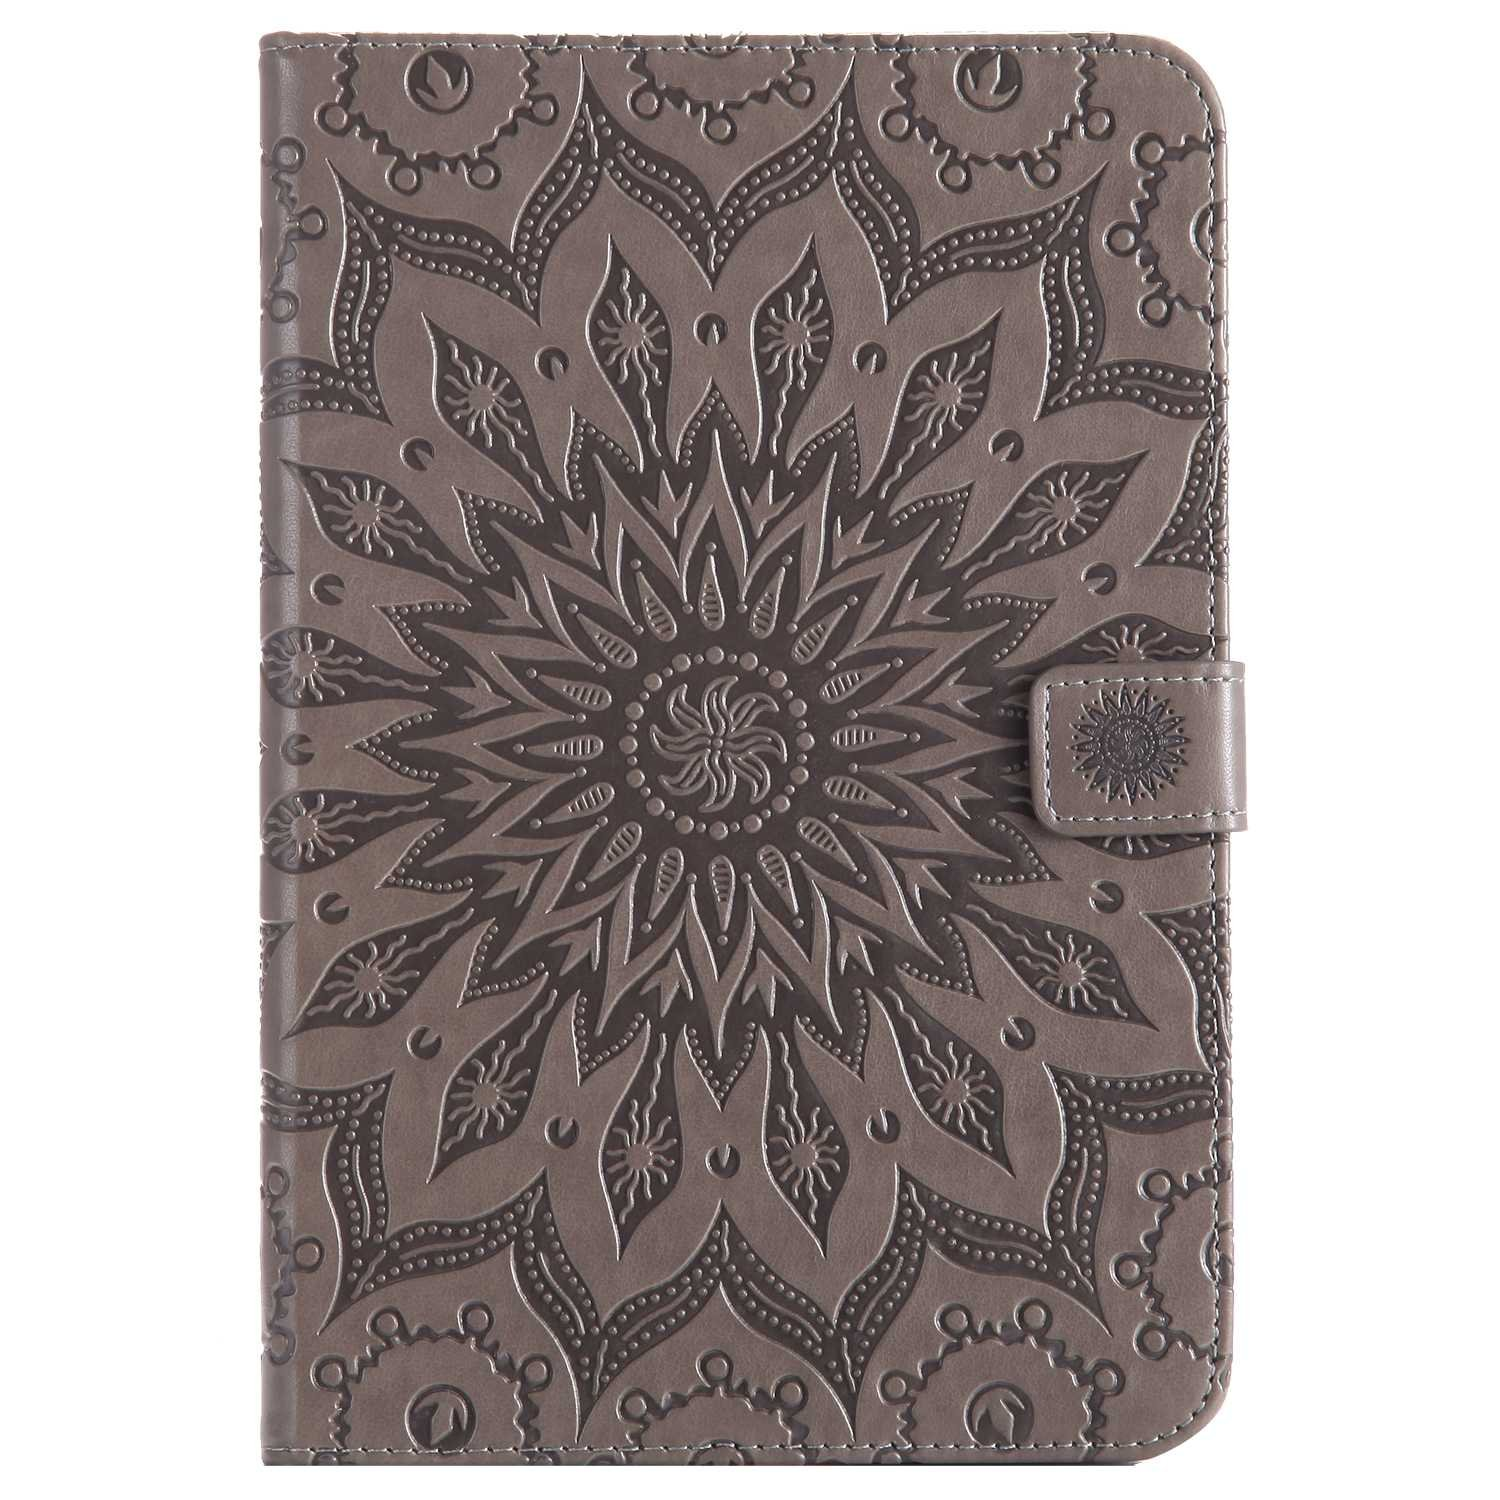 Bear Village Galaxy Tab a 8.0 Inch Case, Anti Scratch Shell with Adjust Stand, Full Body Protective Cover for Samsung Galaxy Tab a 8.0 Inch, Gray by Bear Village